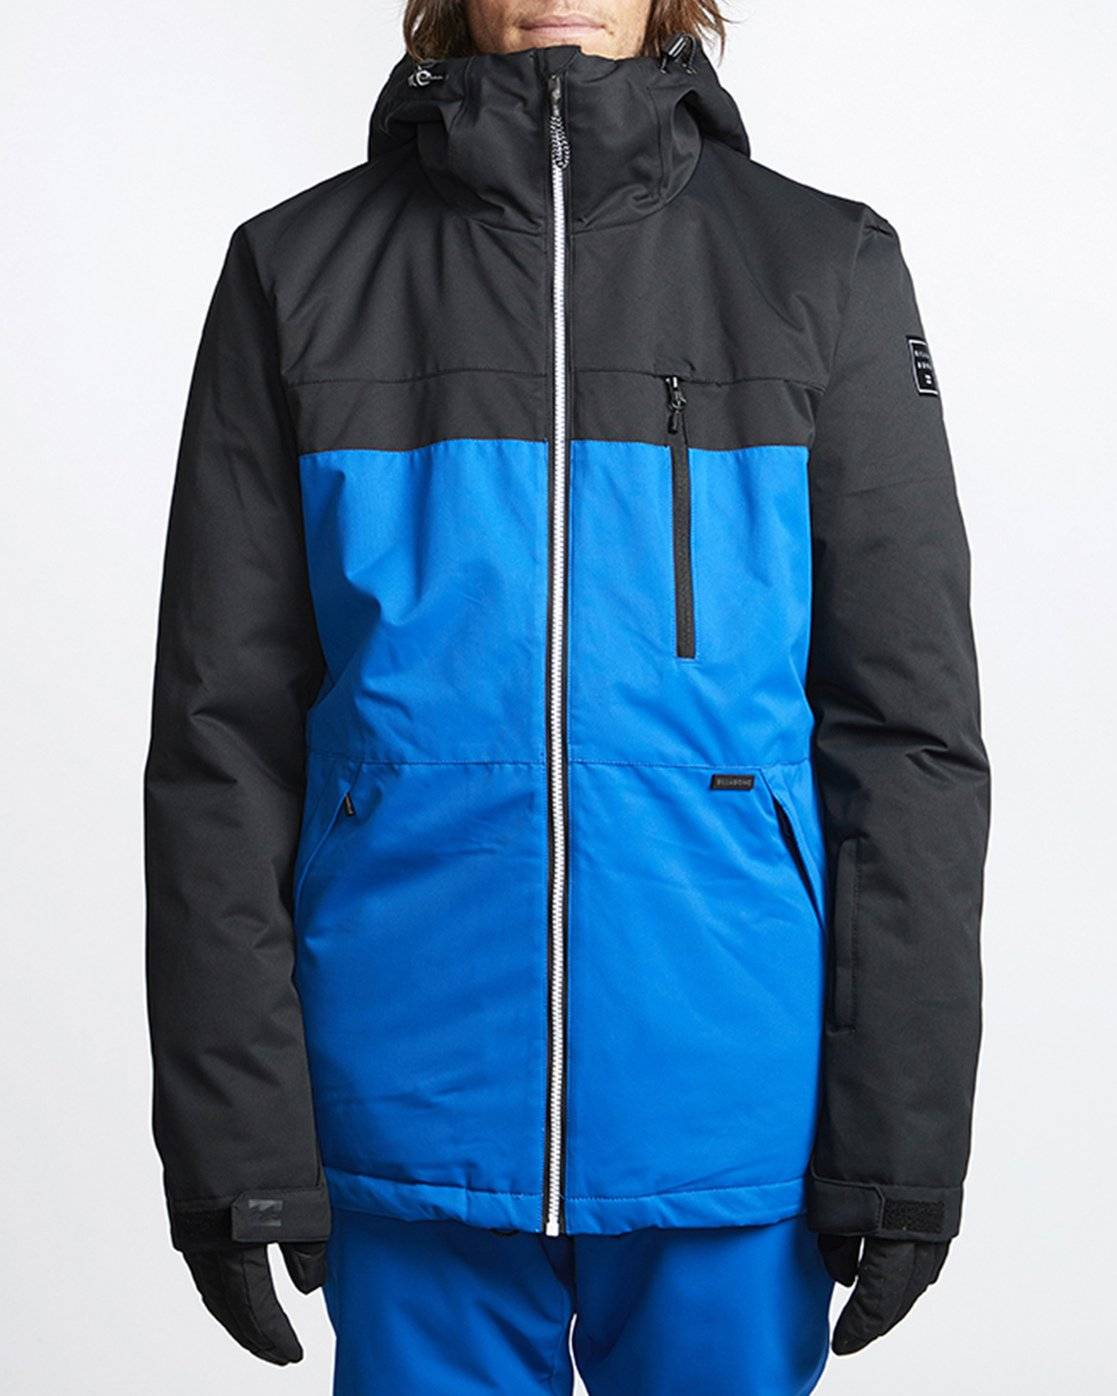 Billabong All Day Snow Jacket  - Blue - Size: Extra Large